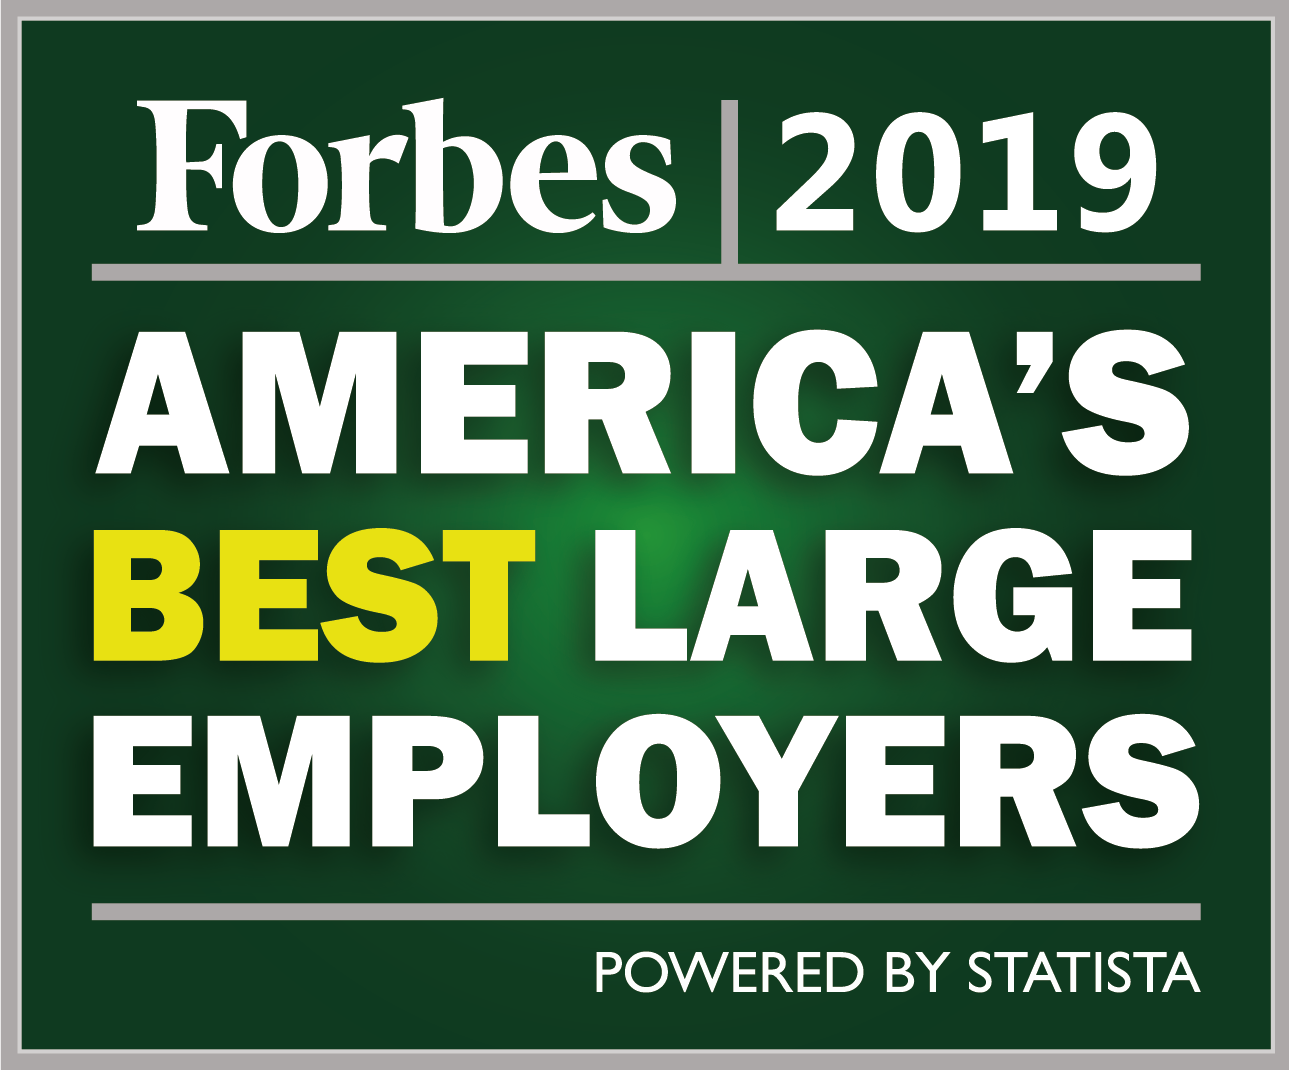 Forbes 2019 America's Best Large Employers badge